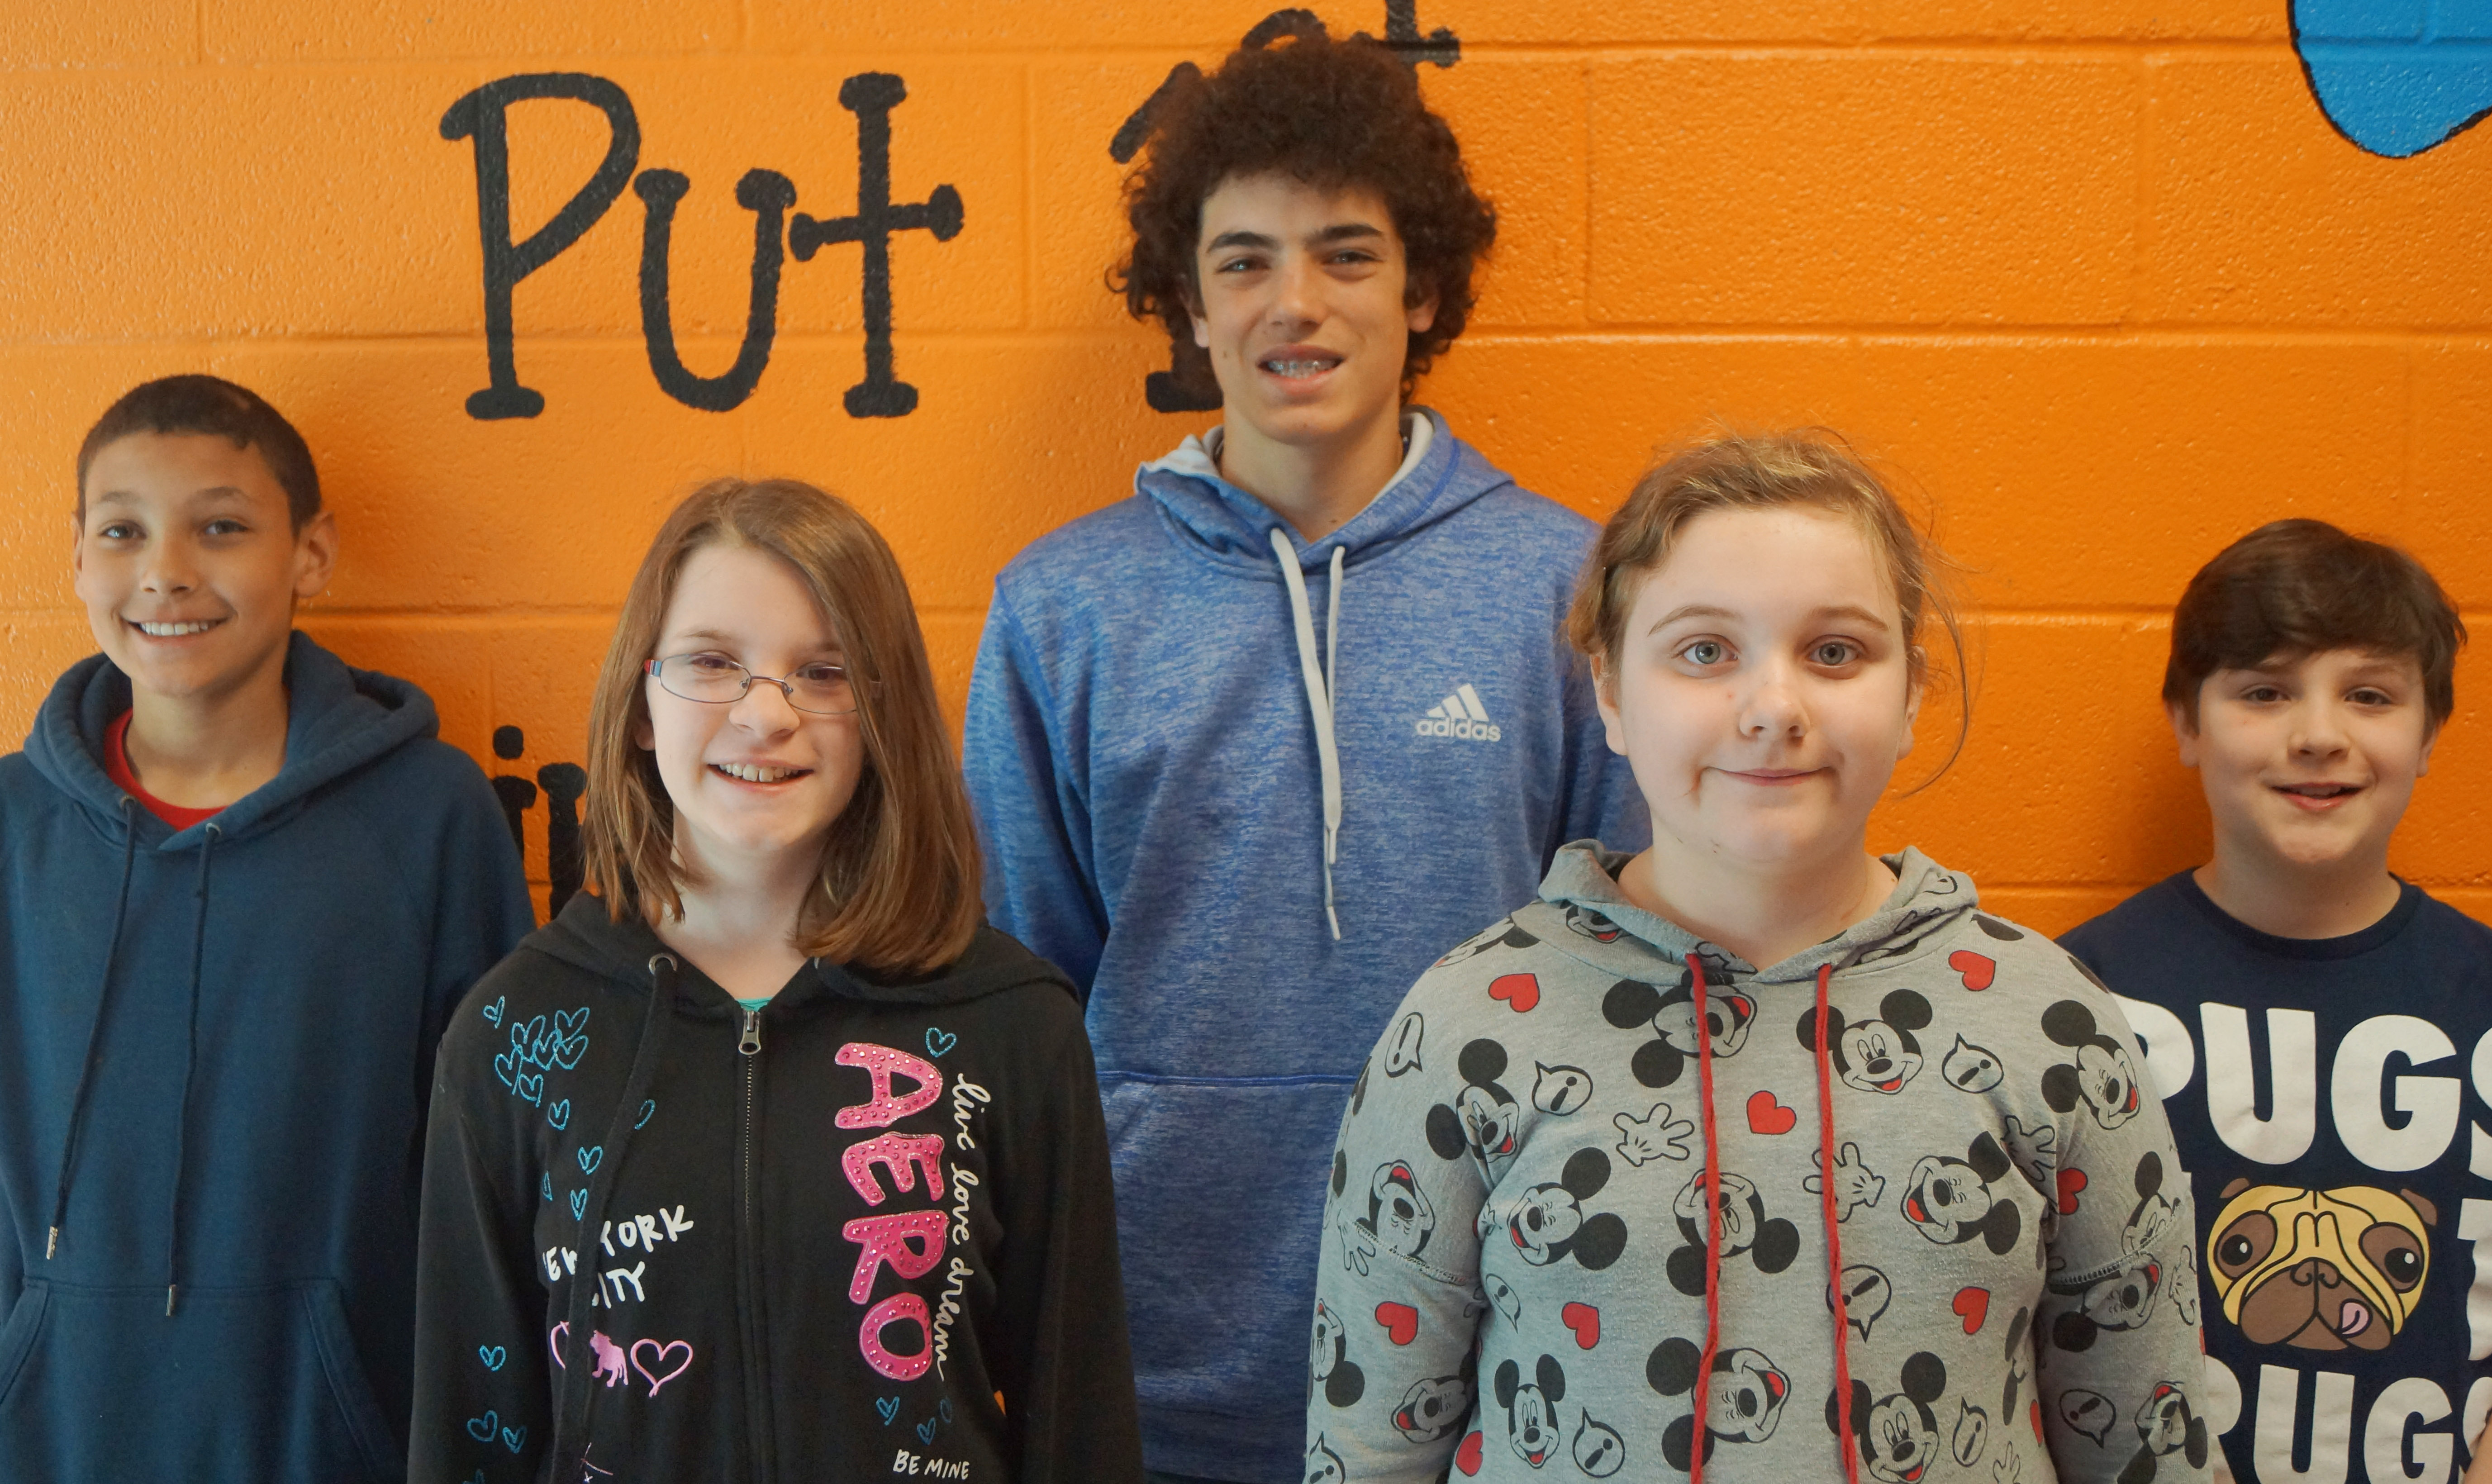 From left are seventh-grader Brice Spaw, sixth-grader Liberty Albrecht, eighth-grader Kameron Smith, fifth-grader Lexi Garvin and fourth-grader Andrew Mardis.